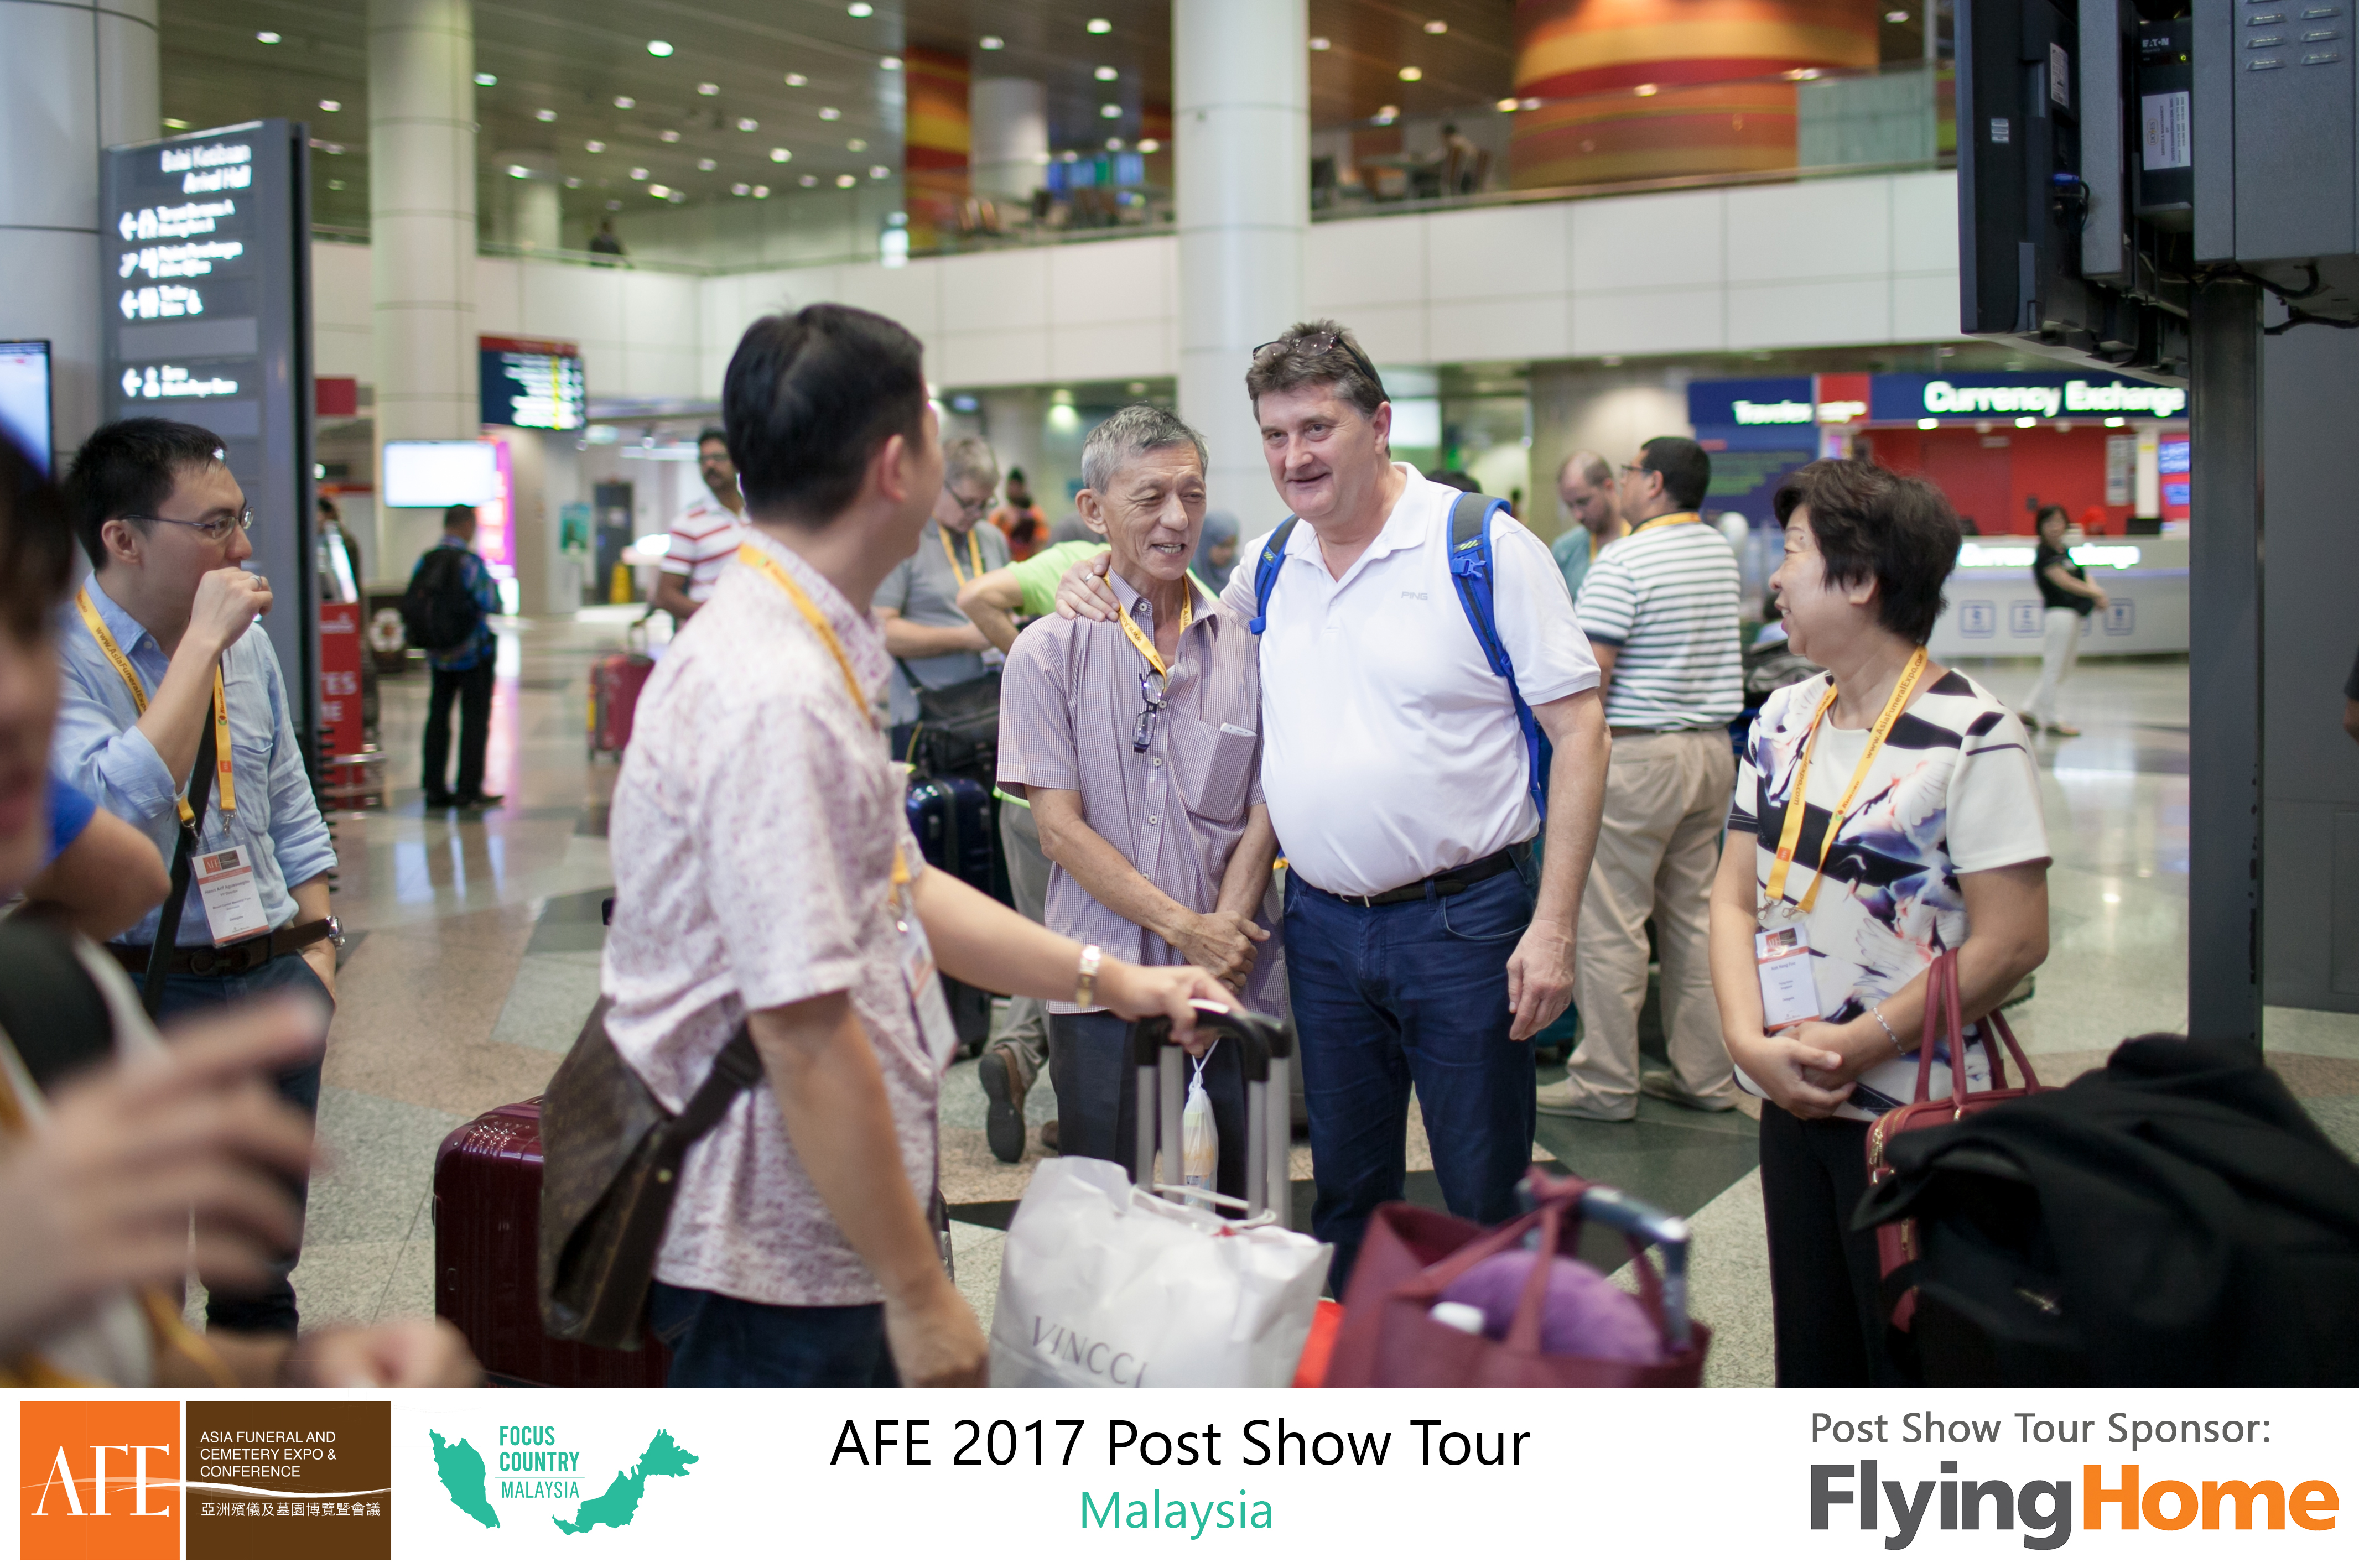 AFE Post Show Tour 2017 Day 1 - 02